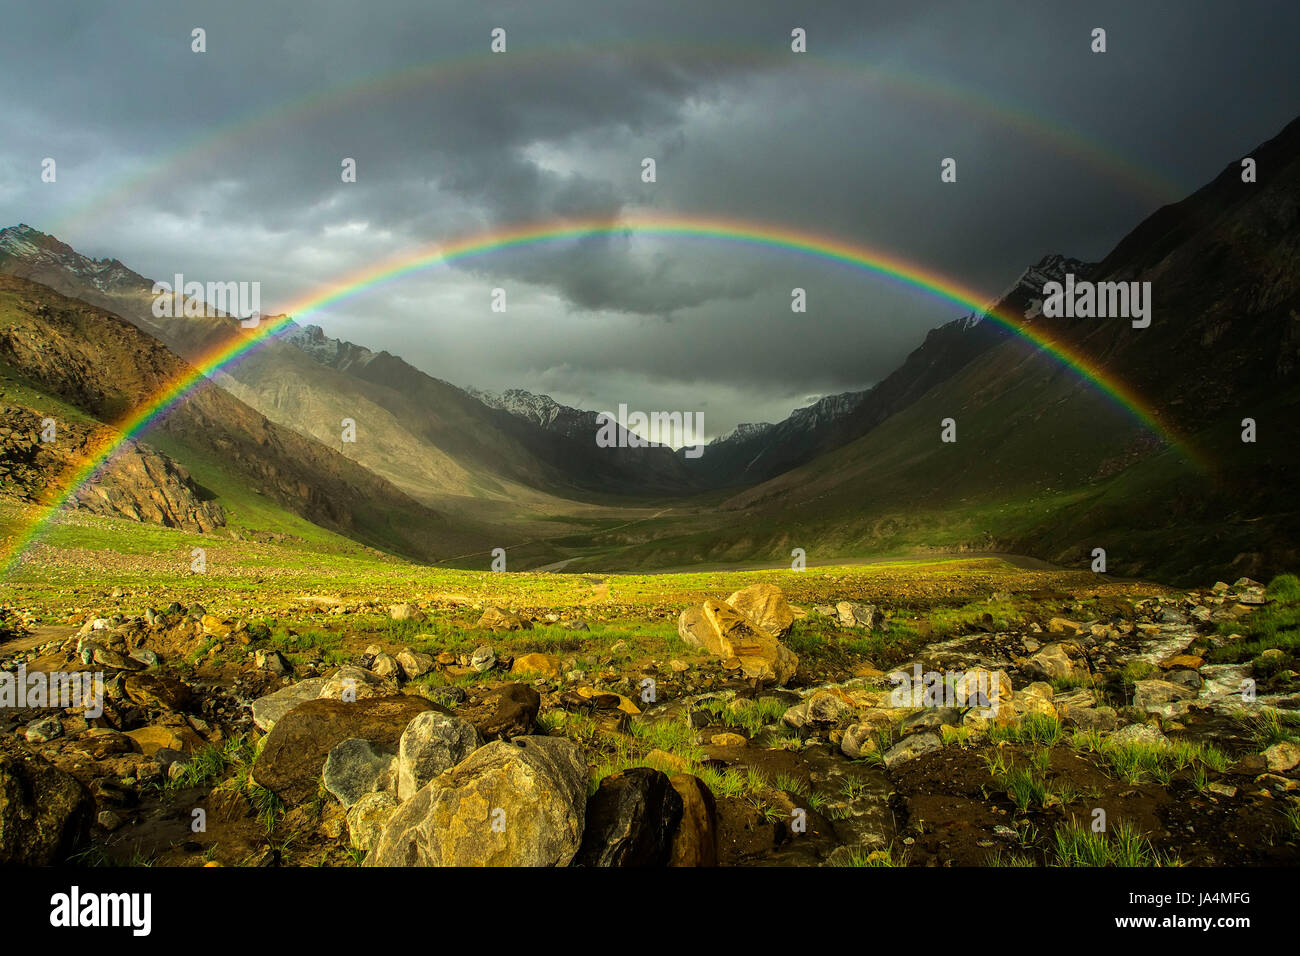 A double bright rainbow after the rain to the high mountains of the valley: above the green fields is a beautiful, - Stock Image